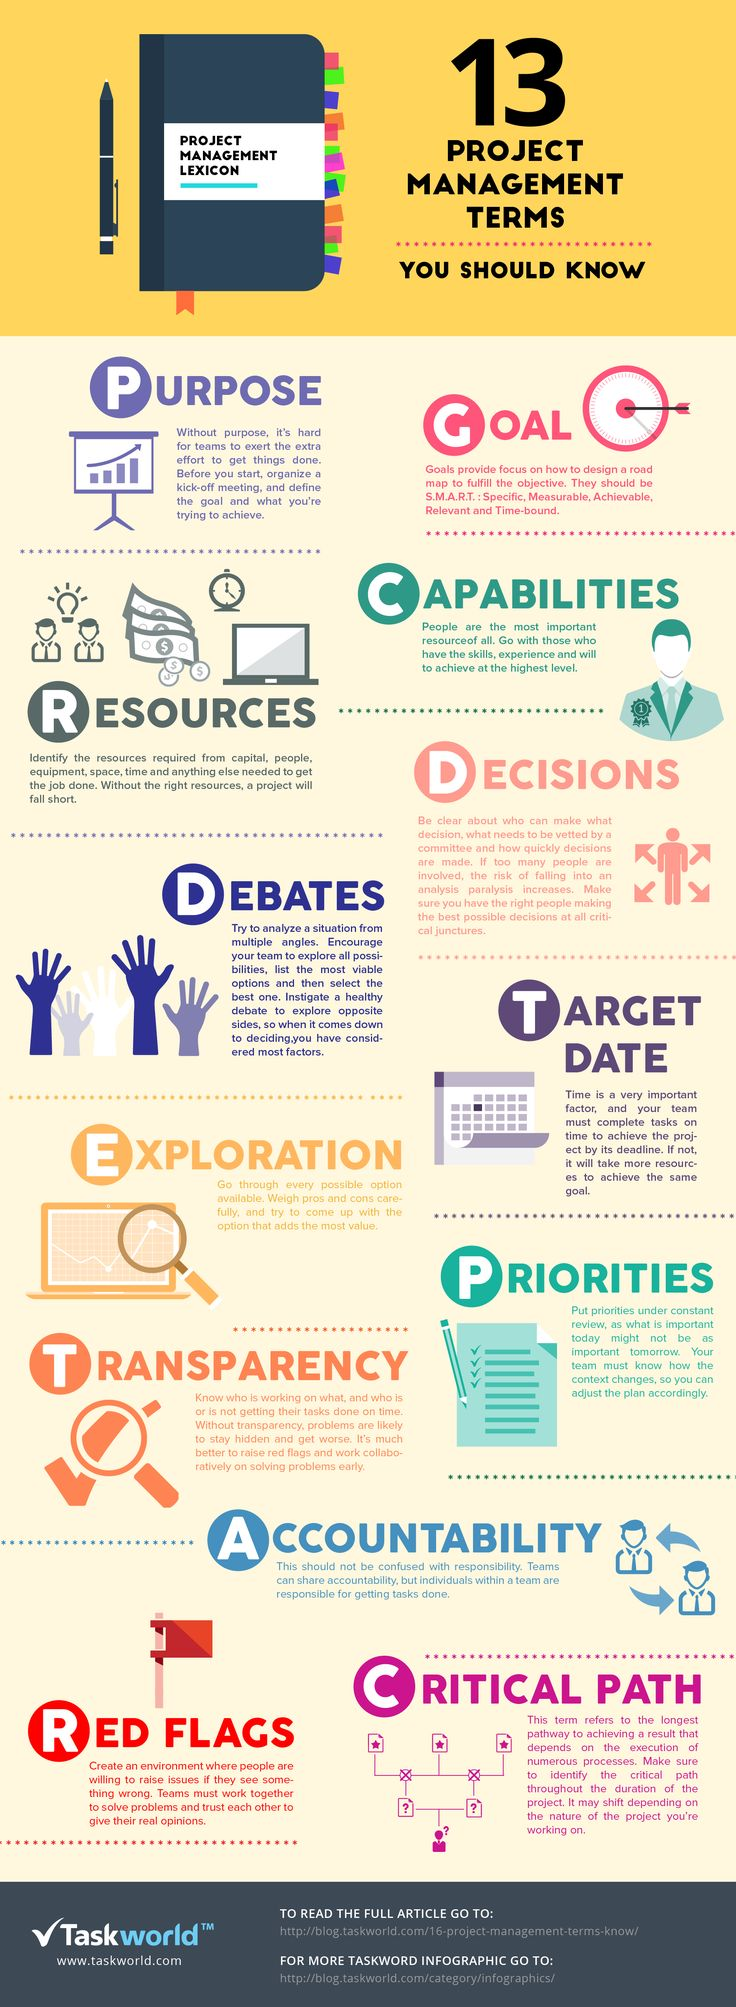 As a project manager, there are certain terms that you must be well-versed with. Check the Top 13 Project Management Terms You Should Know.